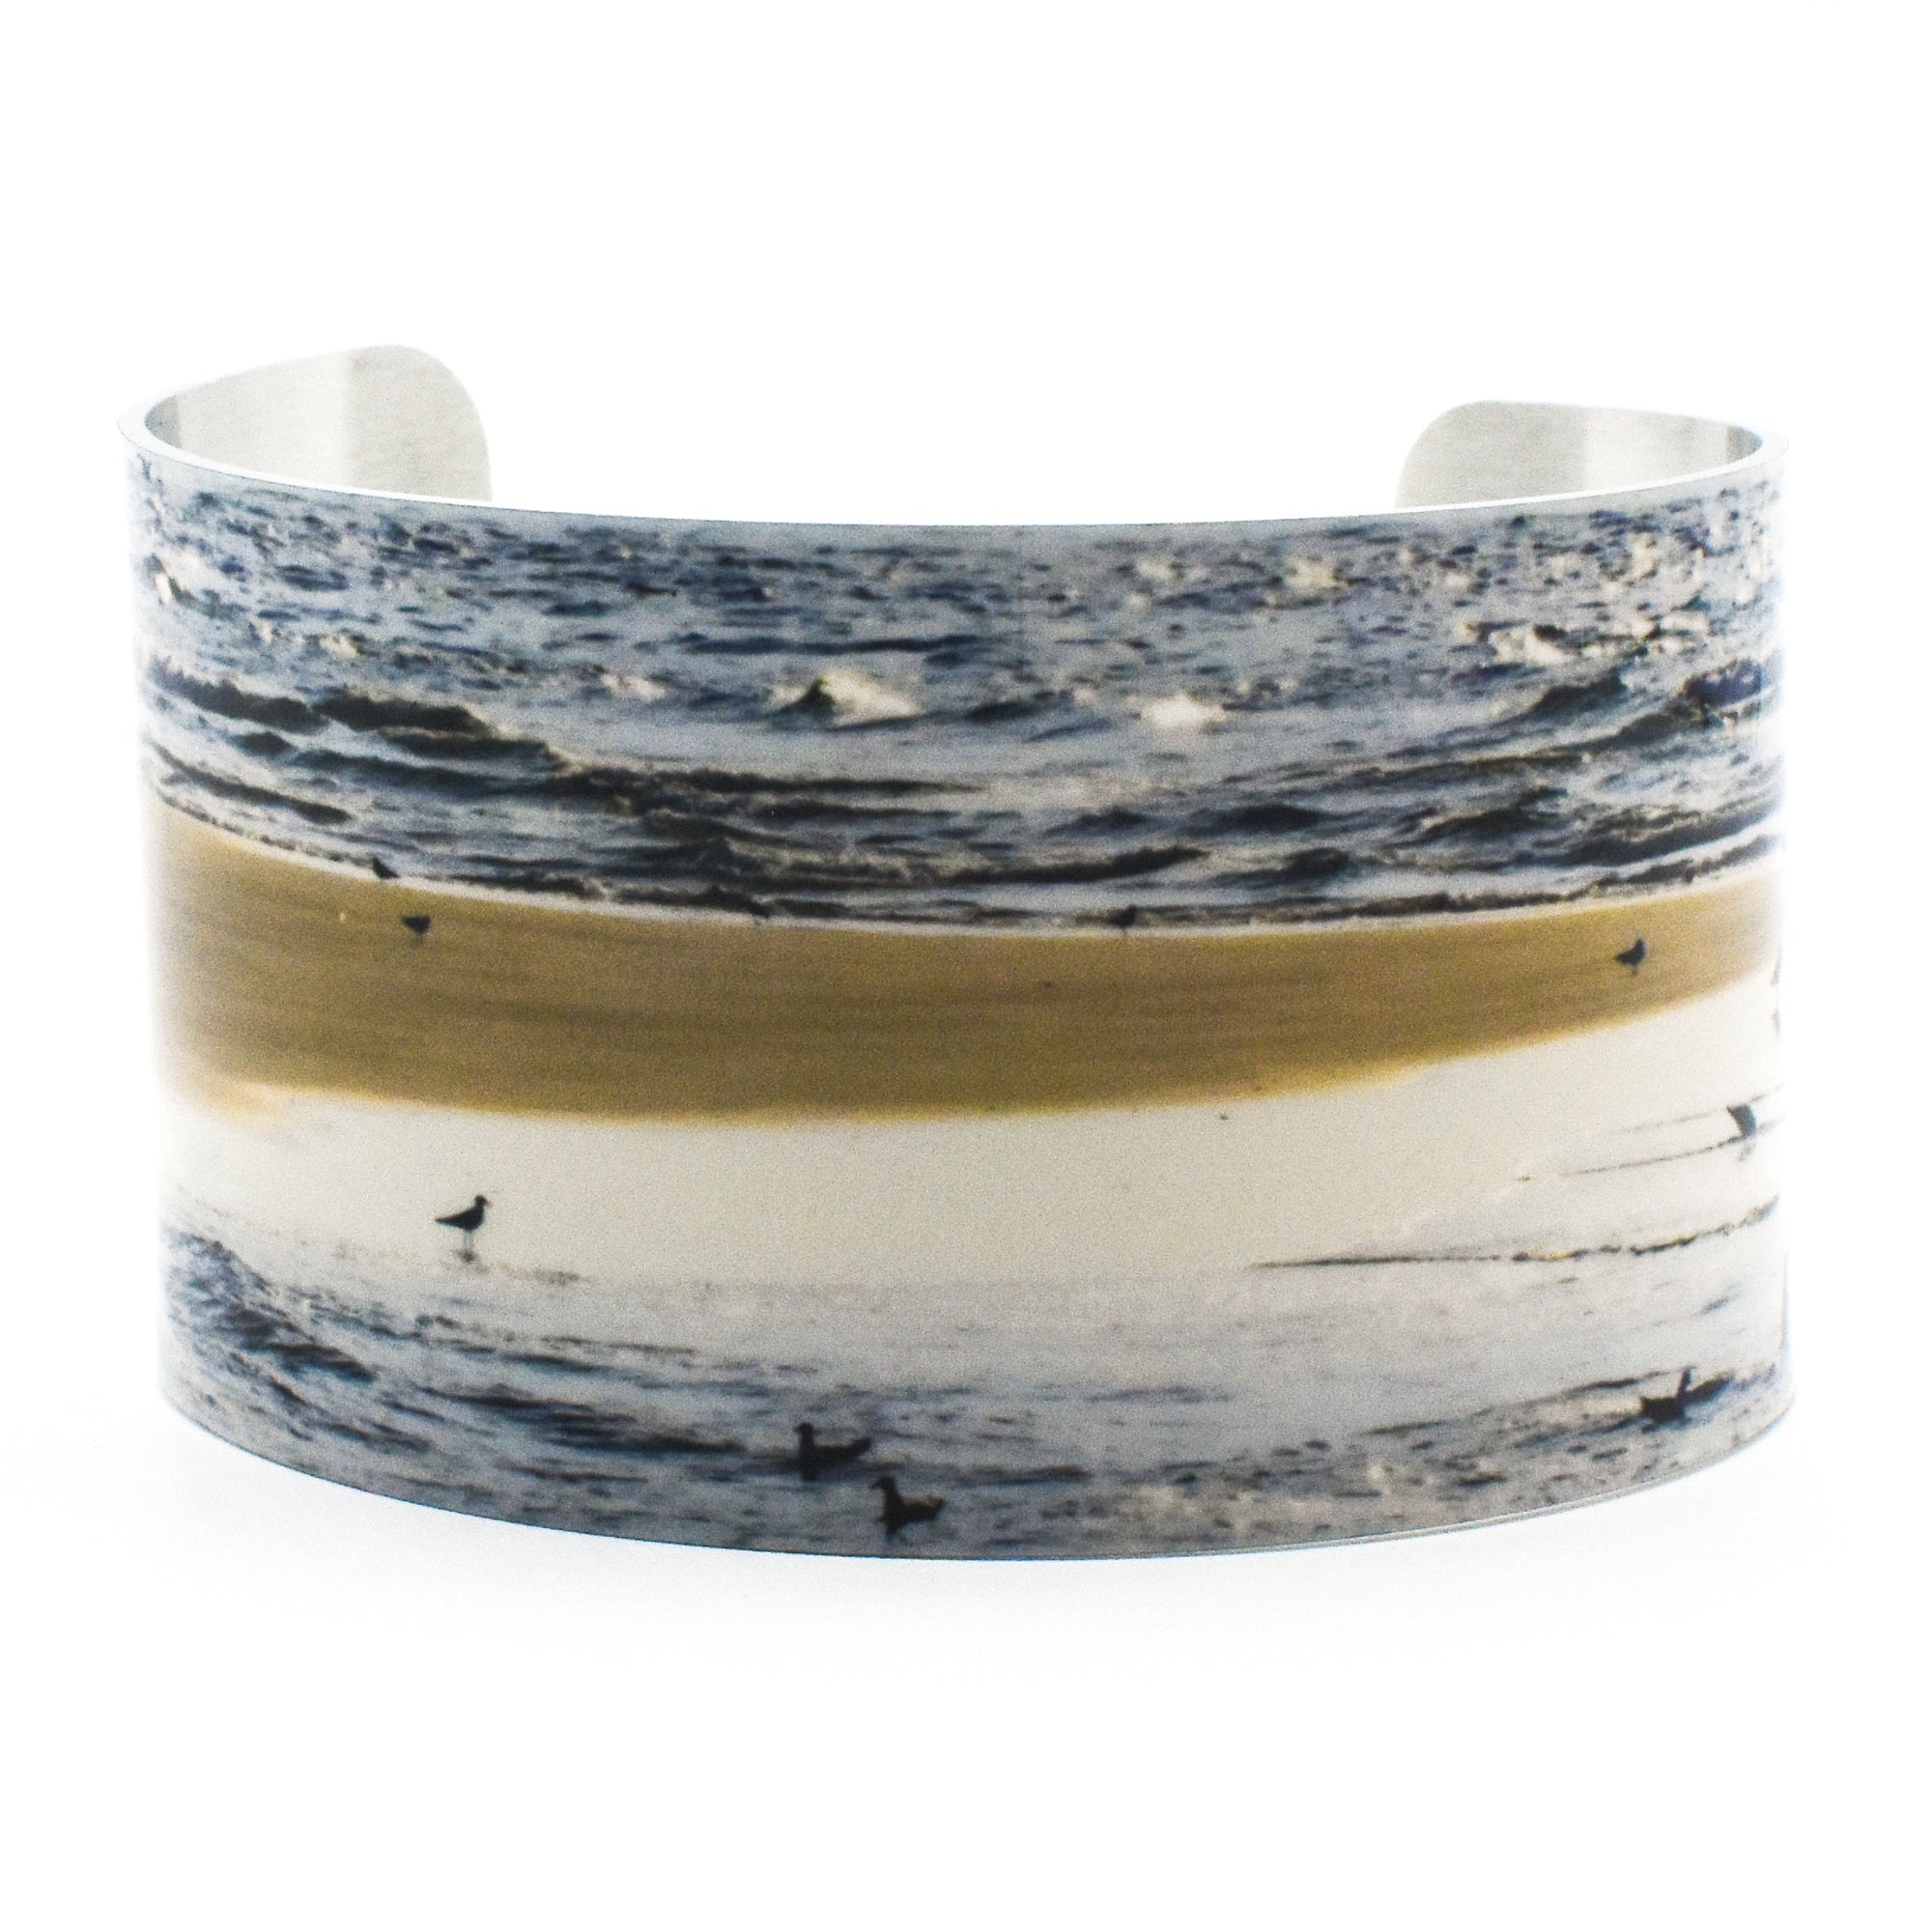 Standard view of Morning Gathering Wide Cuff Beach Bracelet | Wear the Wonder